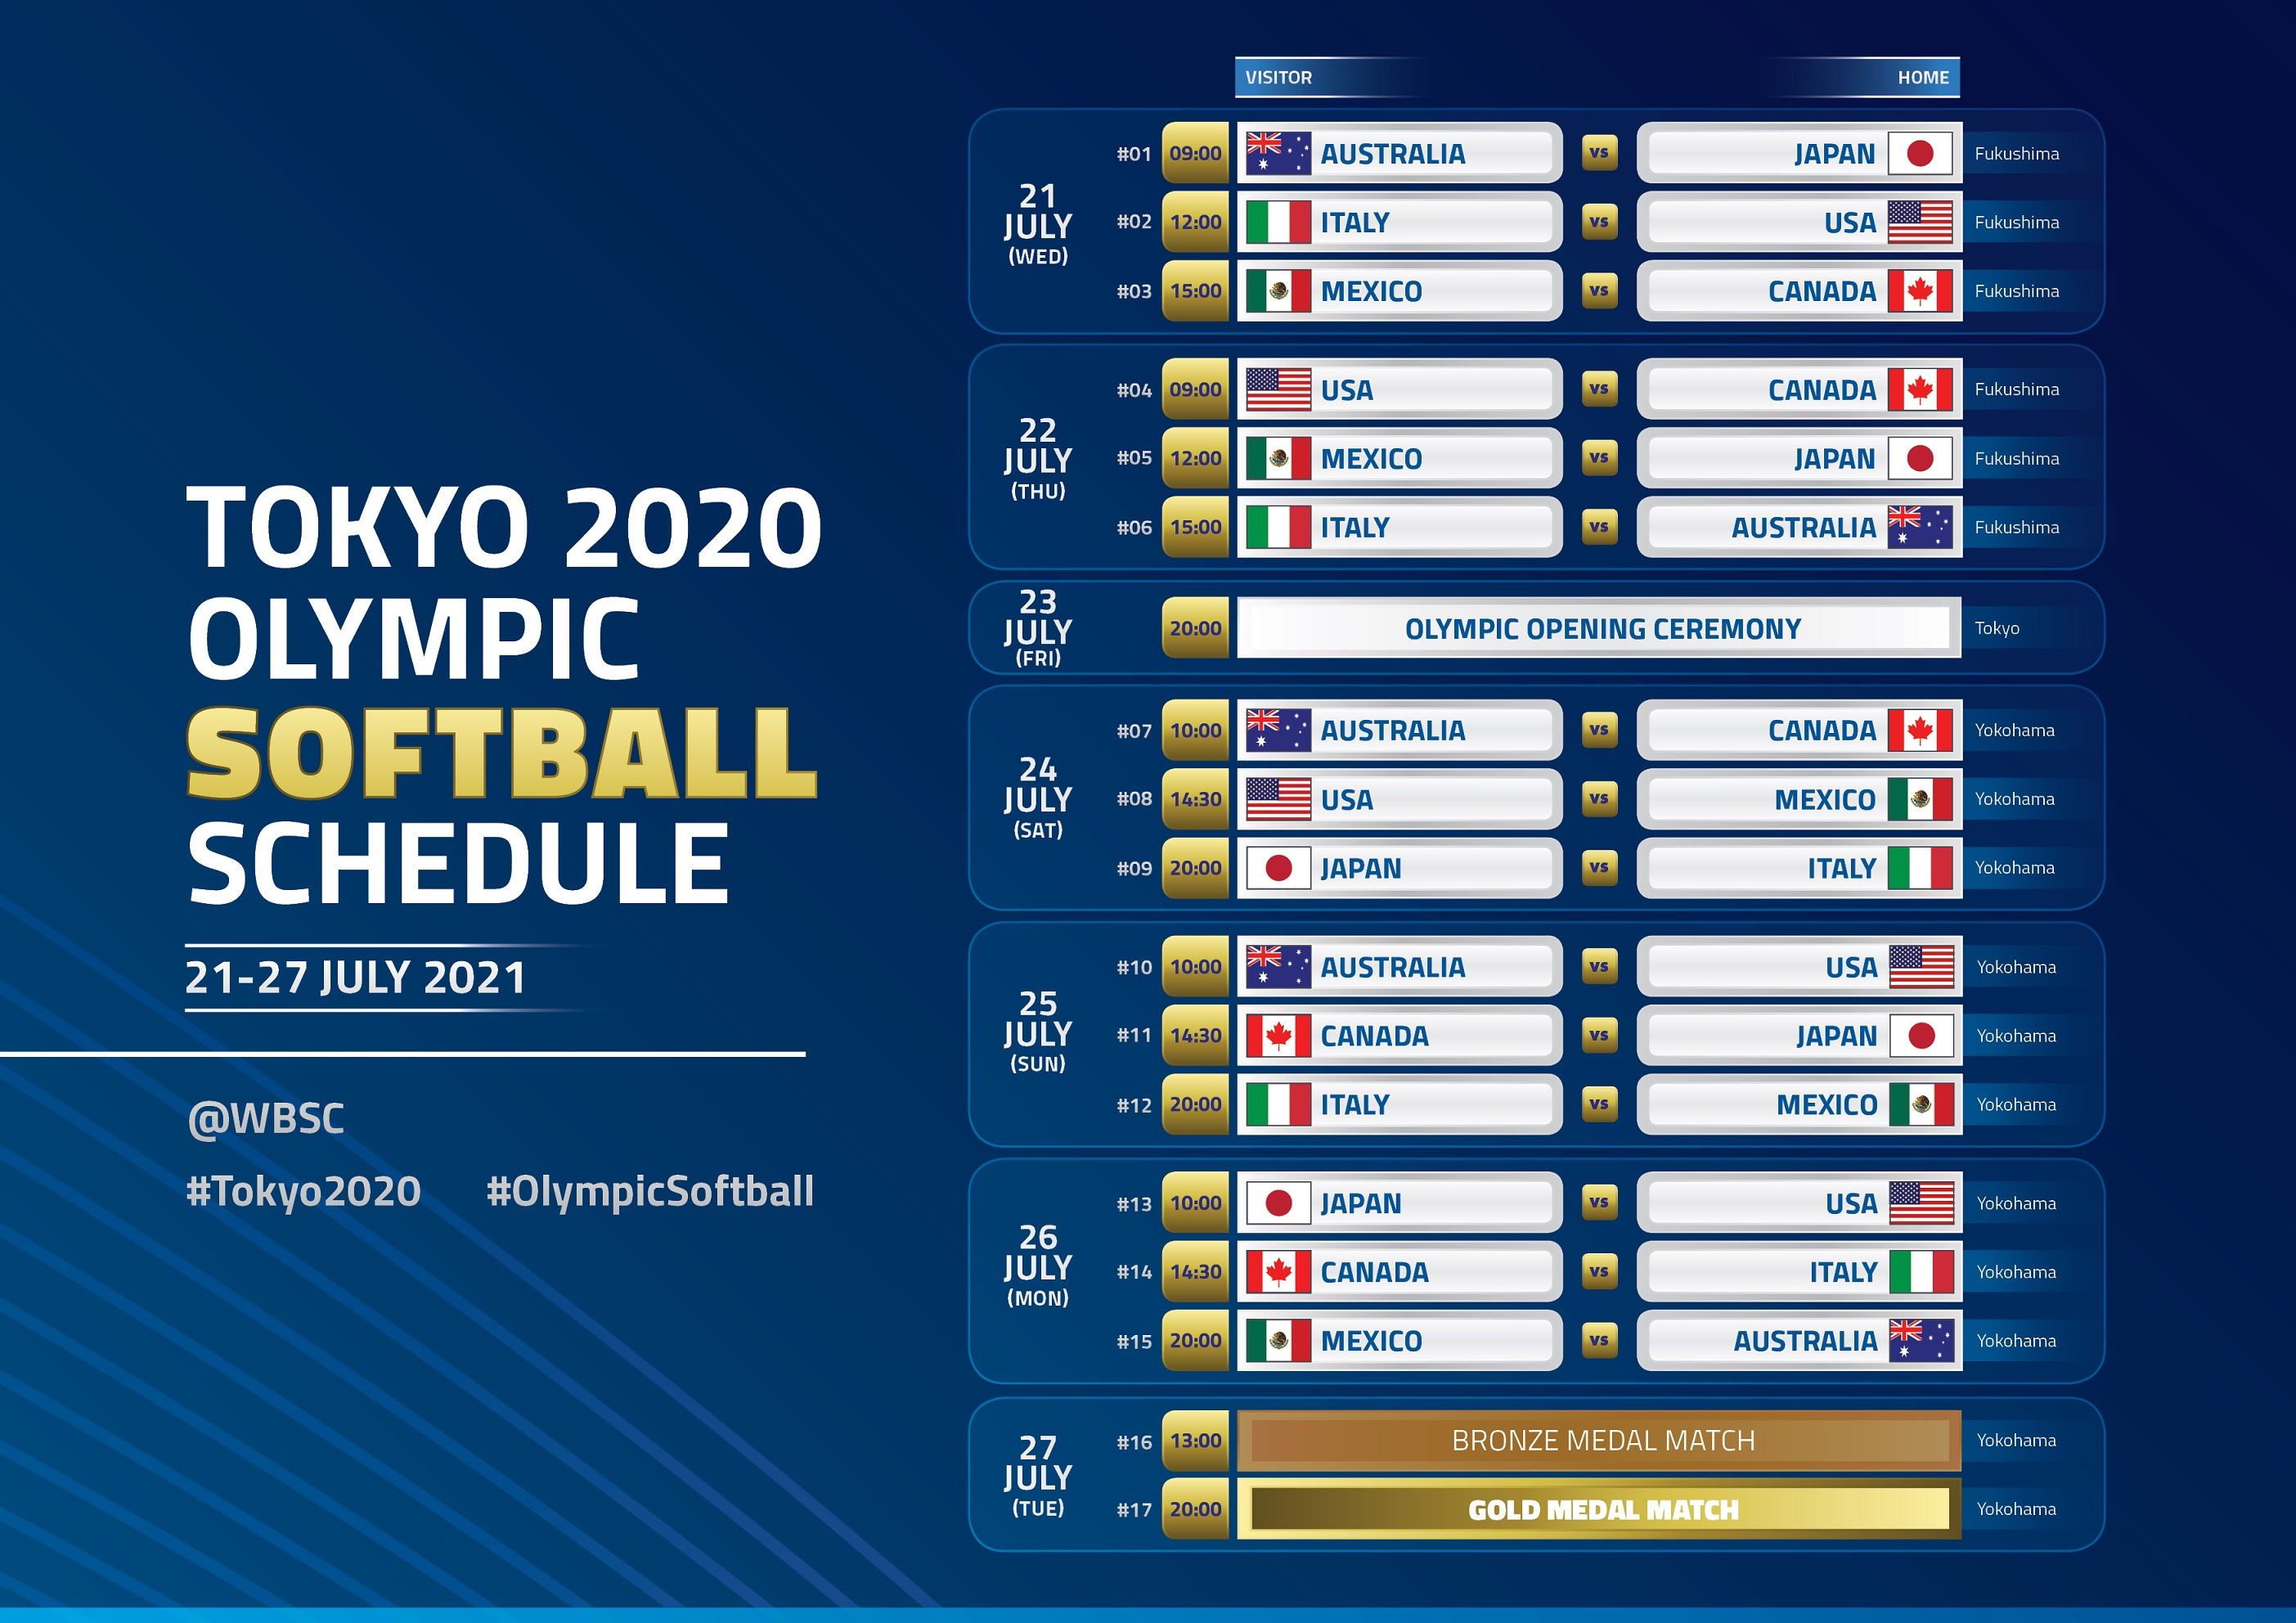 Tokyo 2020 – Olympic Softball Schedule